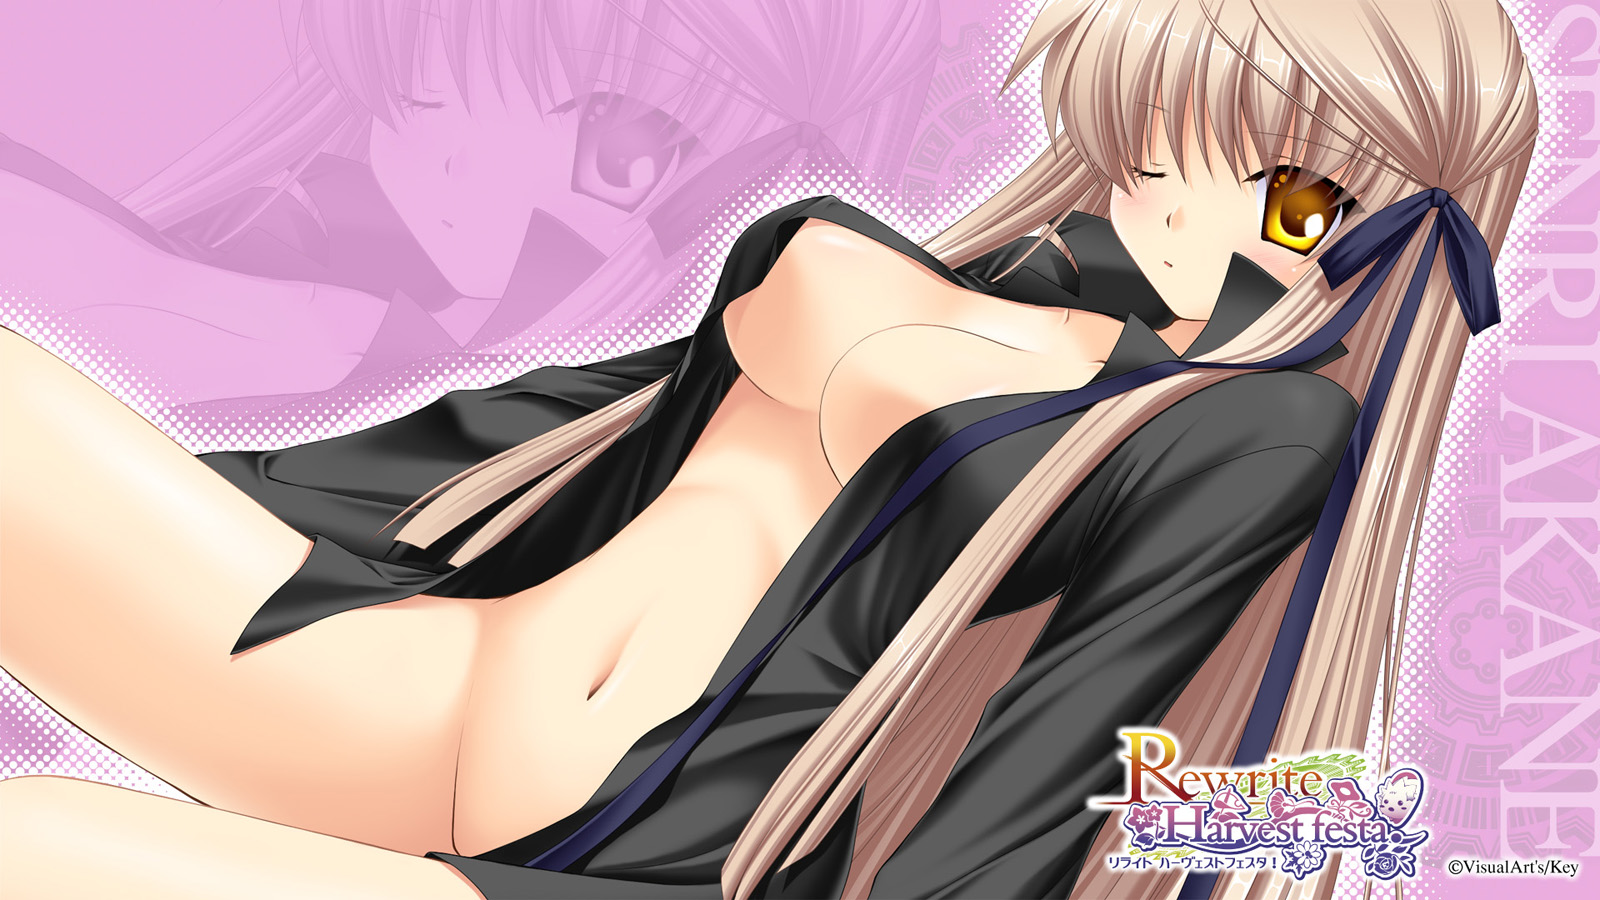 Rewrite   HD Wallpaper